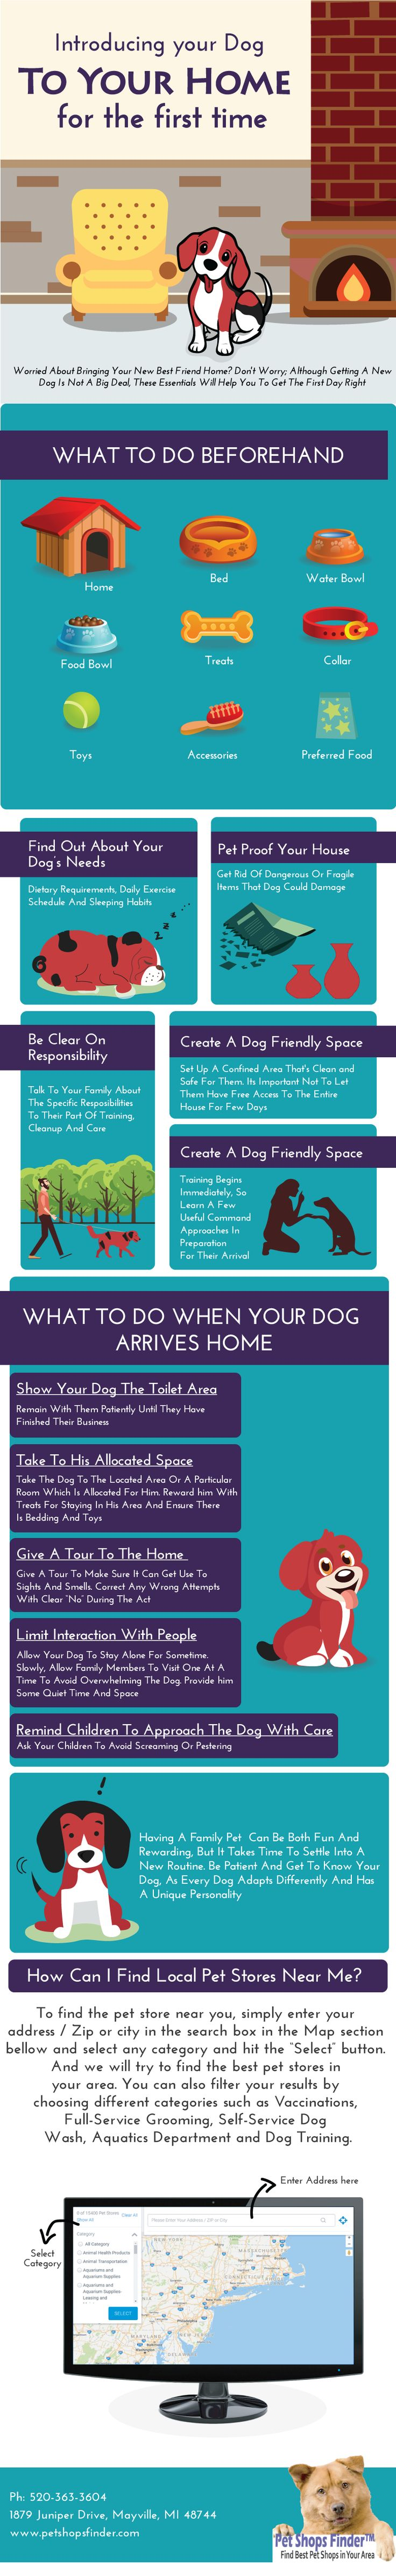 First time dog owners should keep in mind the following tips while welcoming their dog for the first time. Pet Shops Finder, a pet store finder in the US discusses some valuable tips here. #Infographic #Pets #Dogs